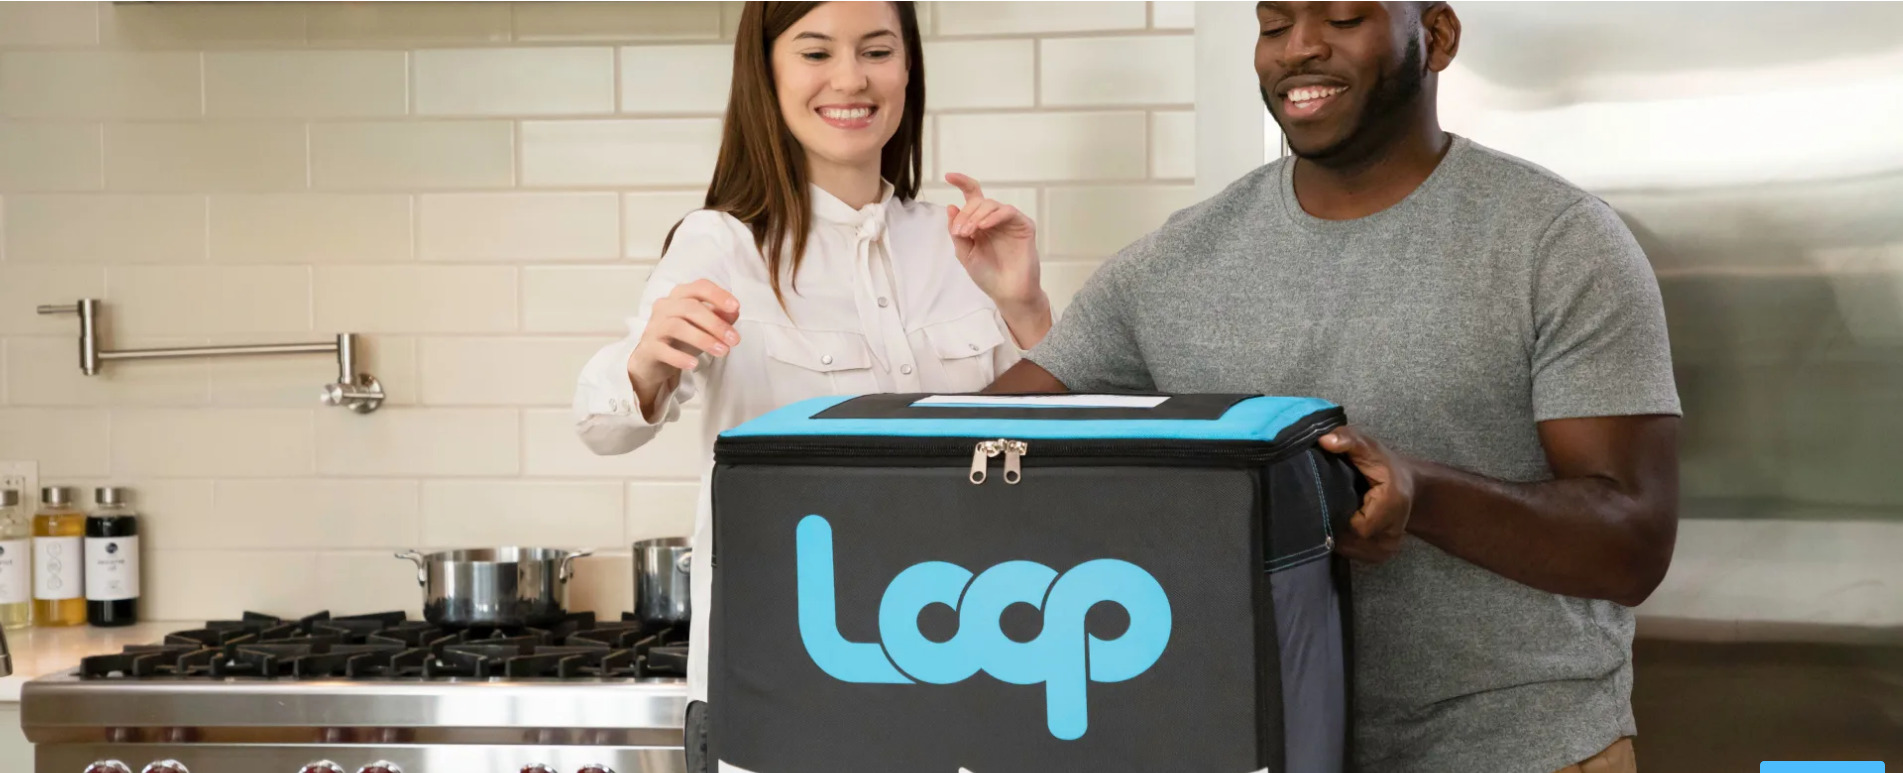 Re-use ecommerce platform Loop to launch in the UK